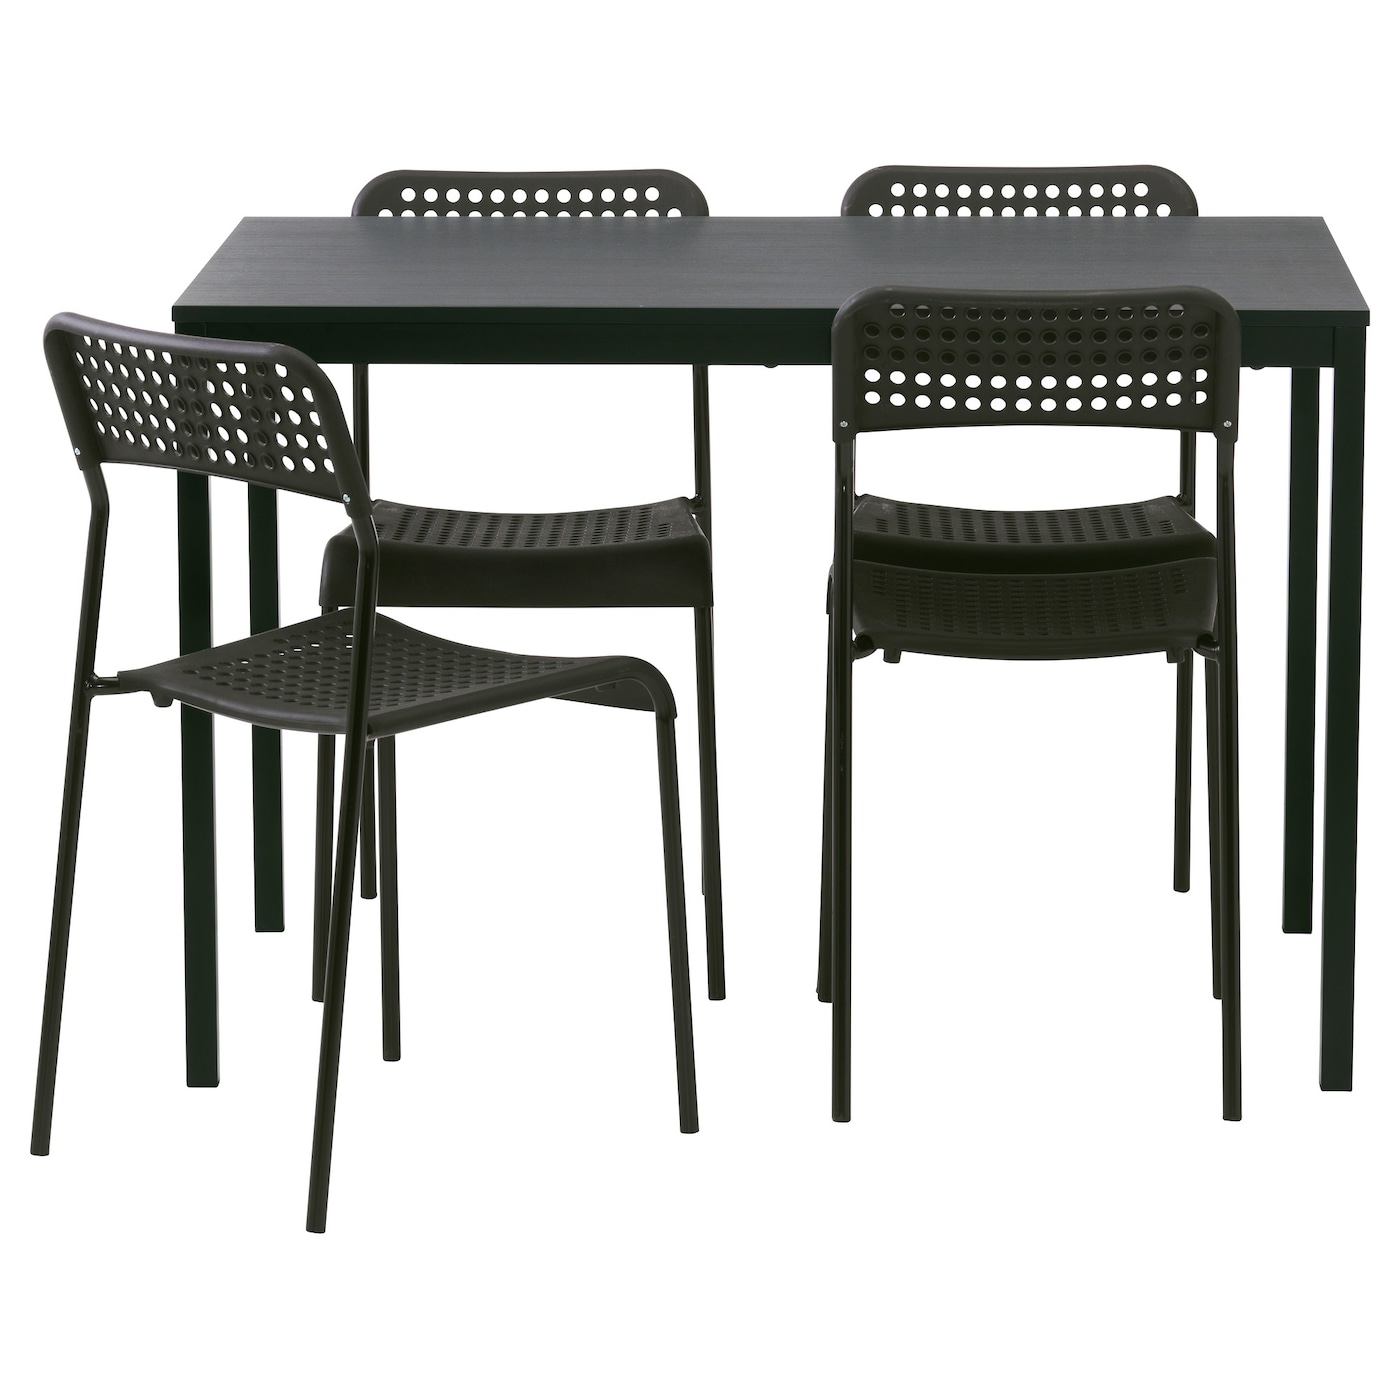 IKEA T REND  ADDE table and 4 chairs. Dining Table Sets   Dining Room Sets   IKEA